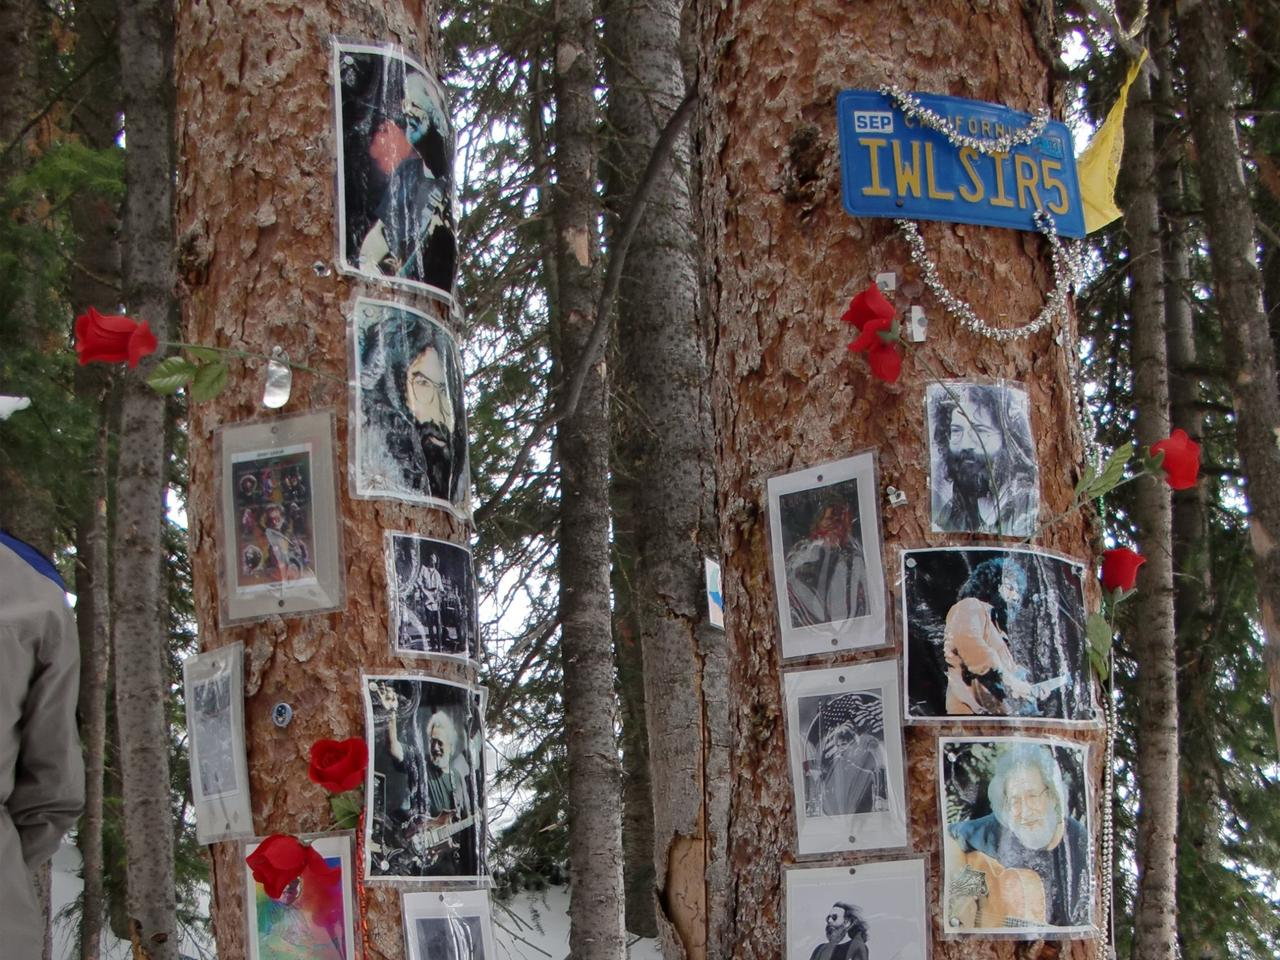 Sunday Escape .. A shrine to Grateful Dead guitarist Jerry Garcia in Aspen, Colorado. Please credit David Wood. To go with story by Angela Saurine